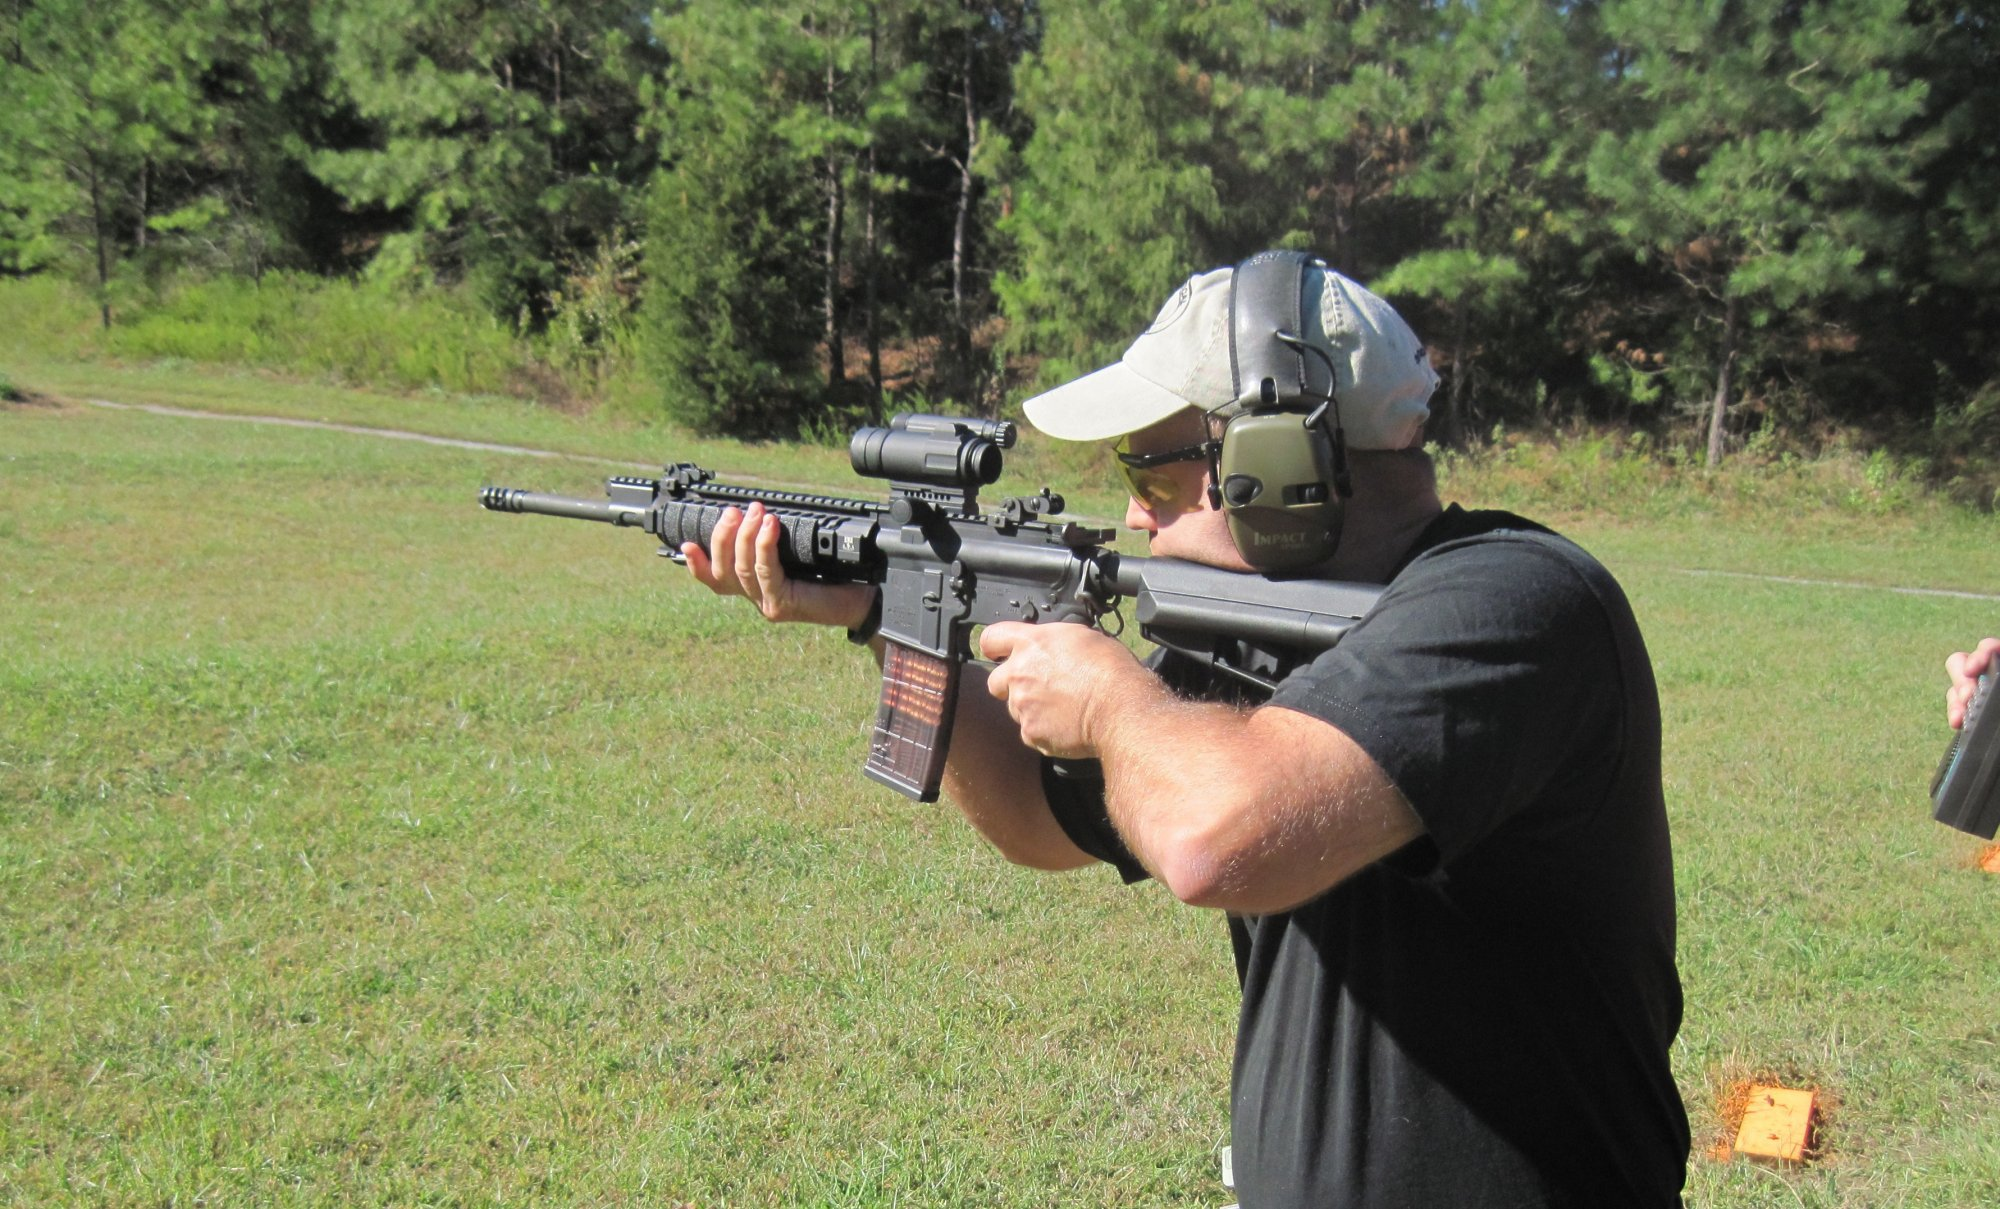 Adams Arms Andre Knecht Chiropractor 3 Gun <!  :en  >Adams Arms Gas Piston/Op Rod Retrofit Kits for Tactical and Competition AR (AR 15)/M4/M4A1 Carbines/SBRs: Smooth Shooting, Accurate, and Reliable (Photos and Video!)<!  :  >